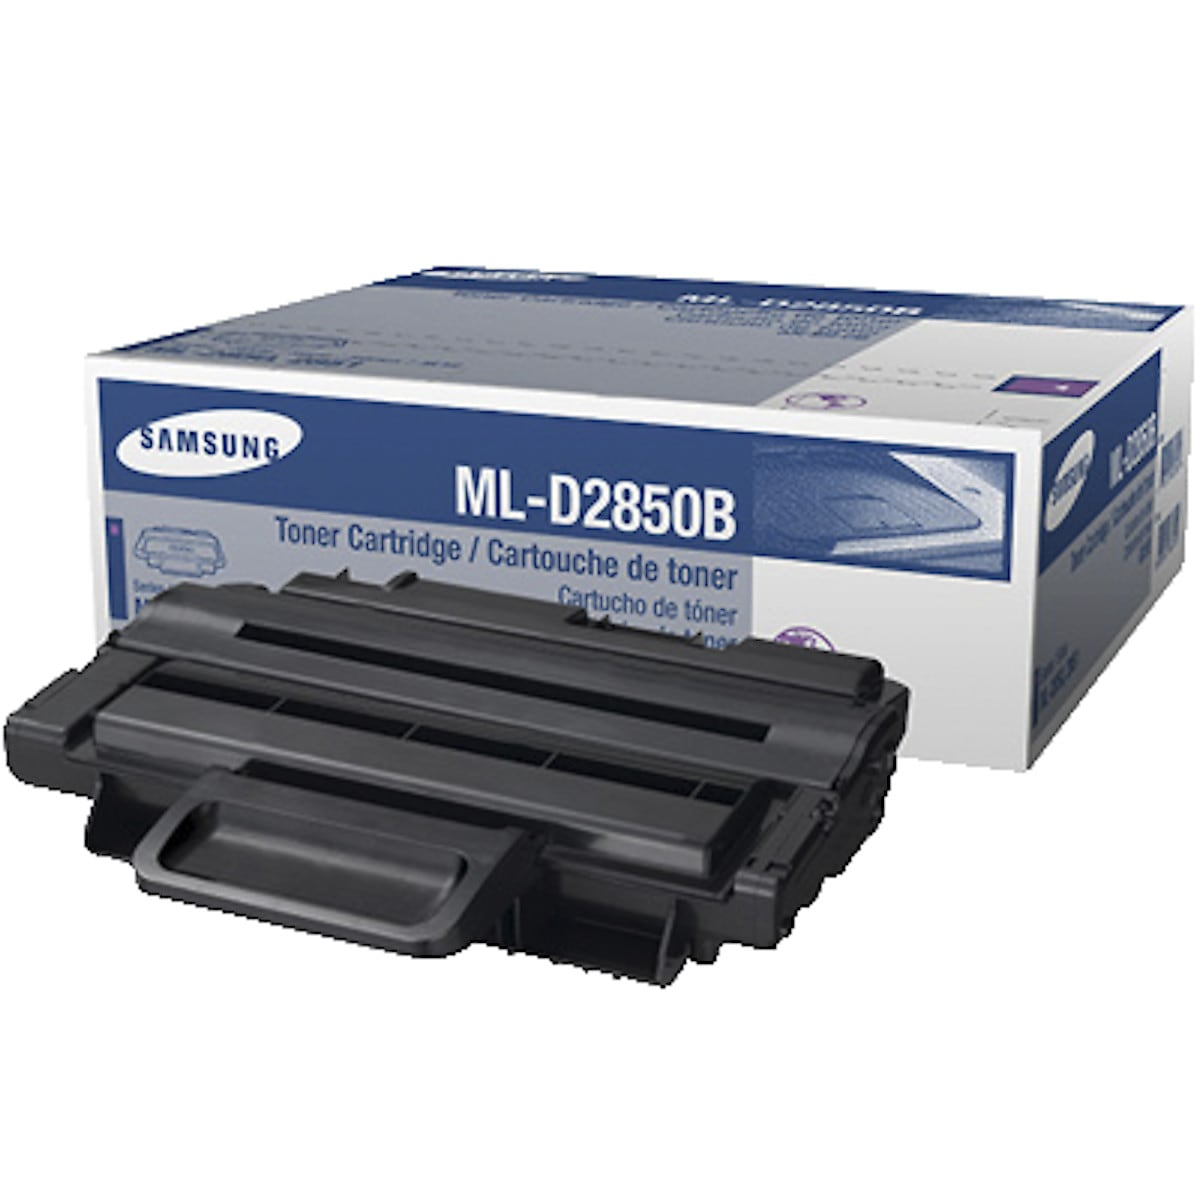 Toner for laserprinters Samsung ML-D2850B